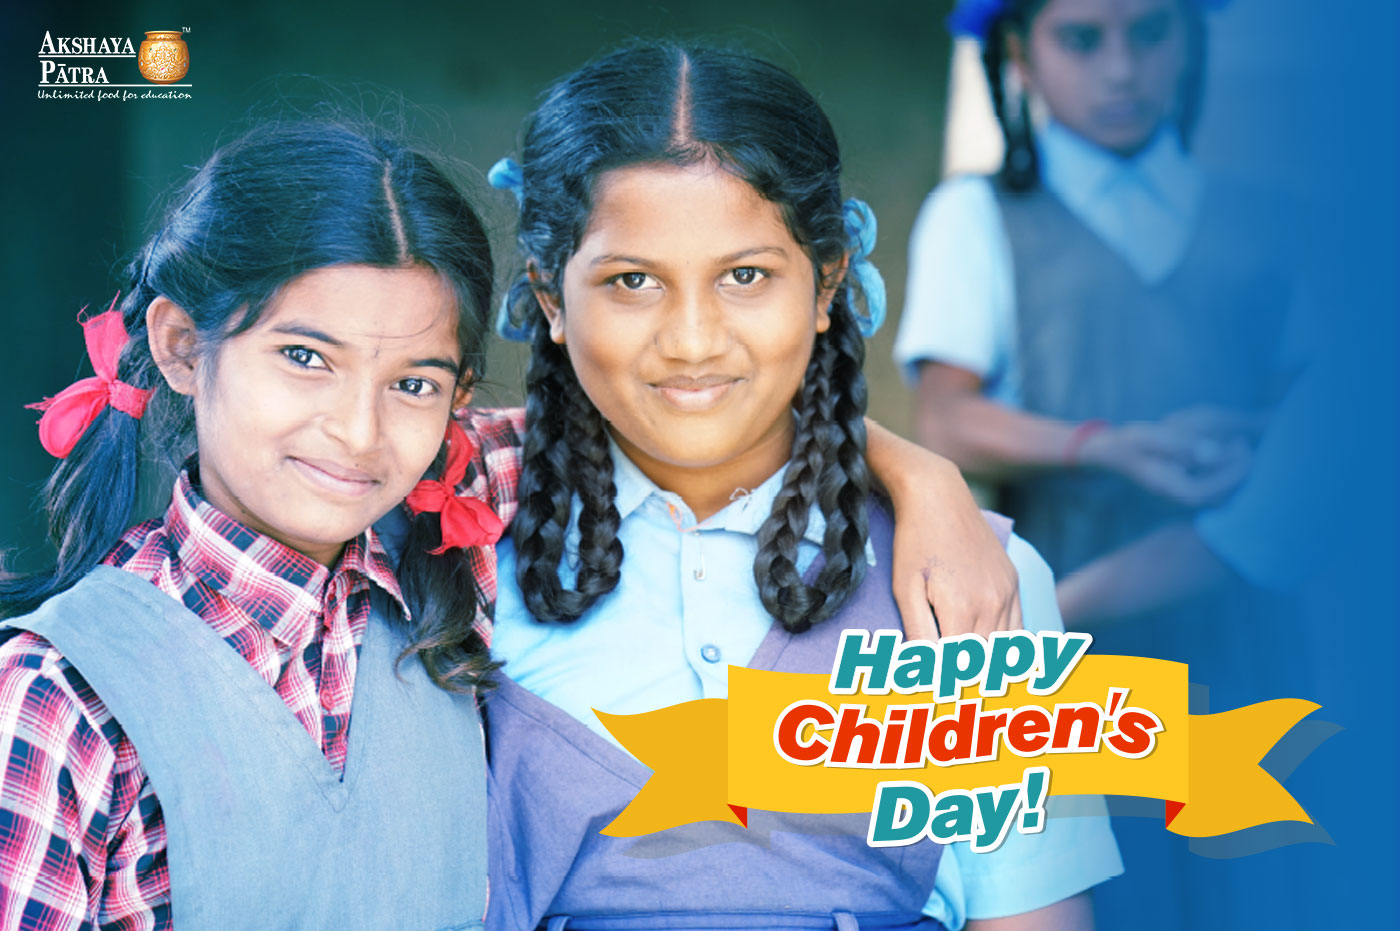 childrens-day-banner